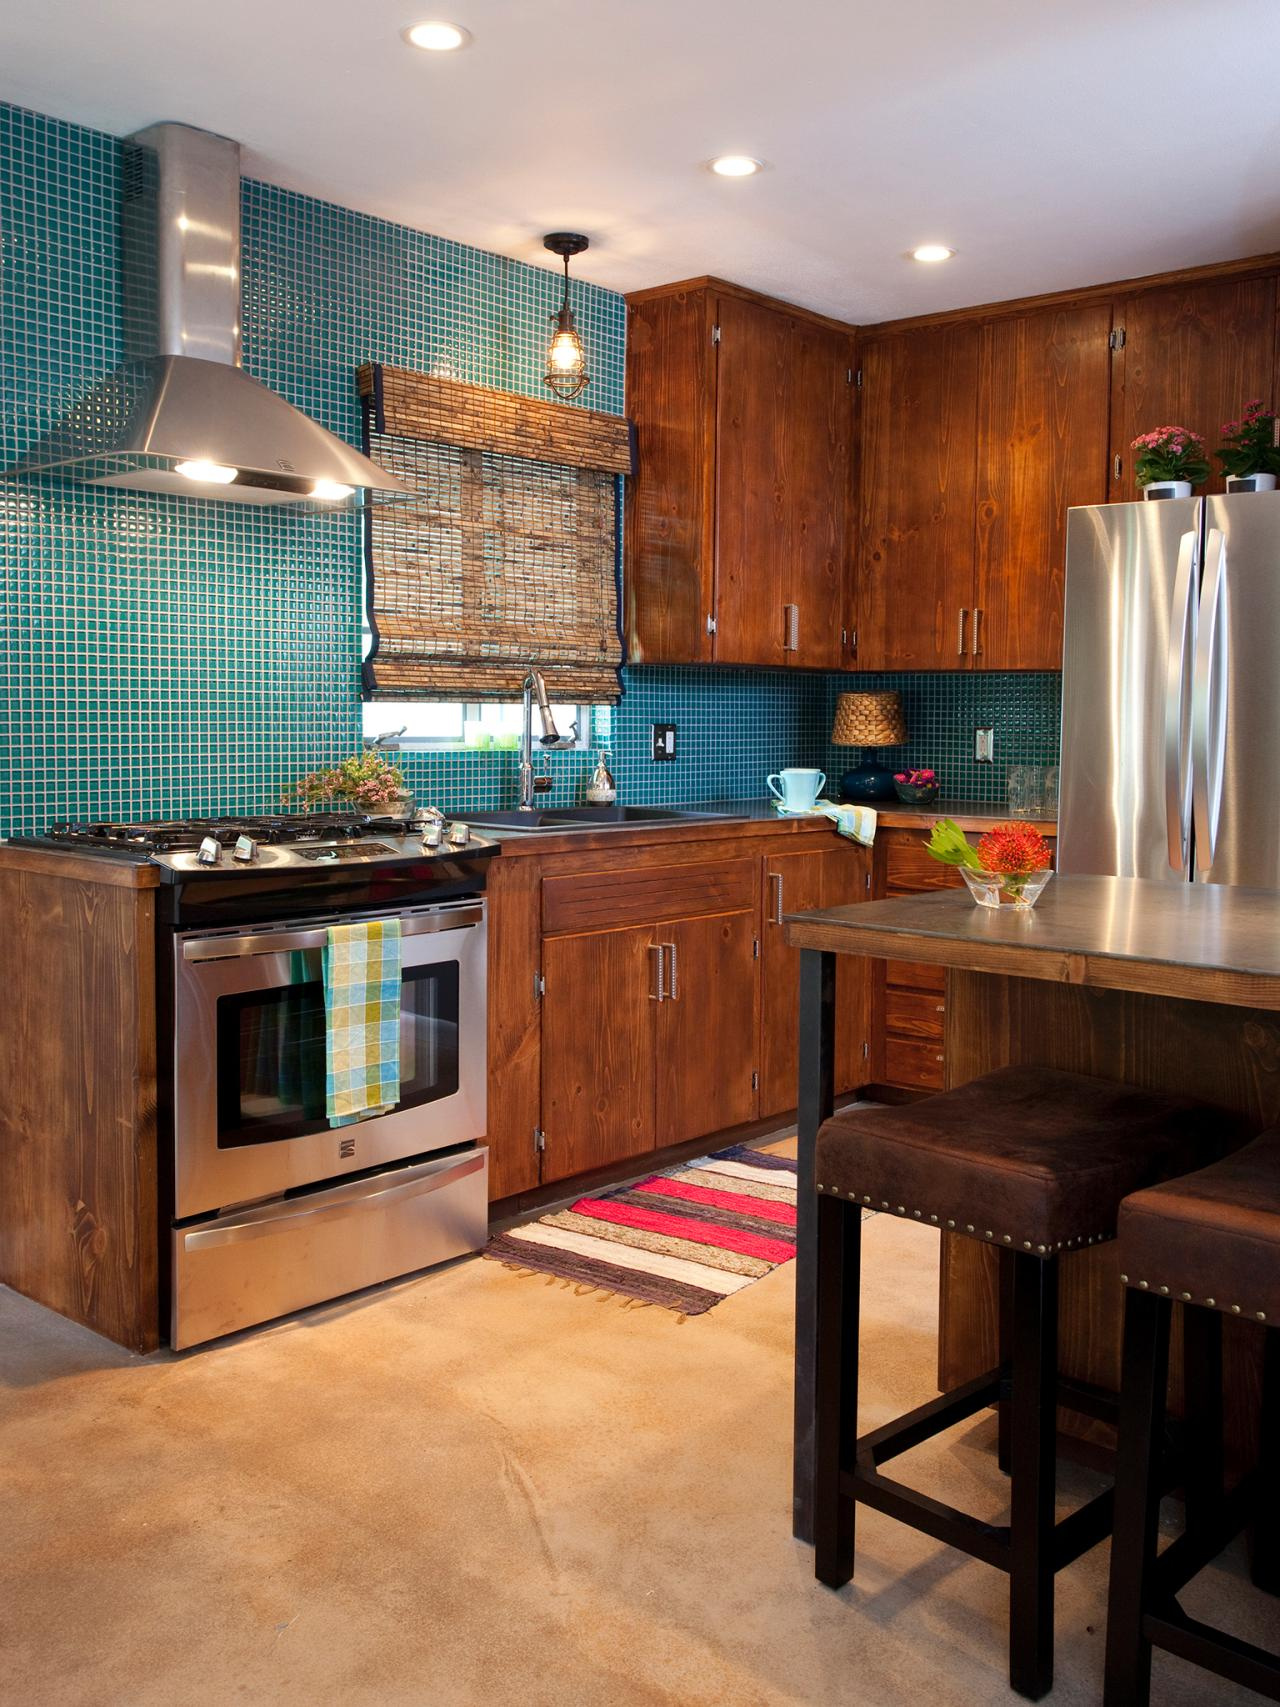 Kitchen Color Idea kitchen countertop colors: pictures & ideas from hgtv | hgtv